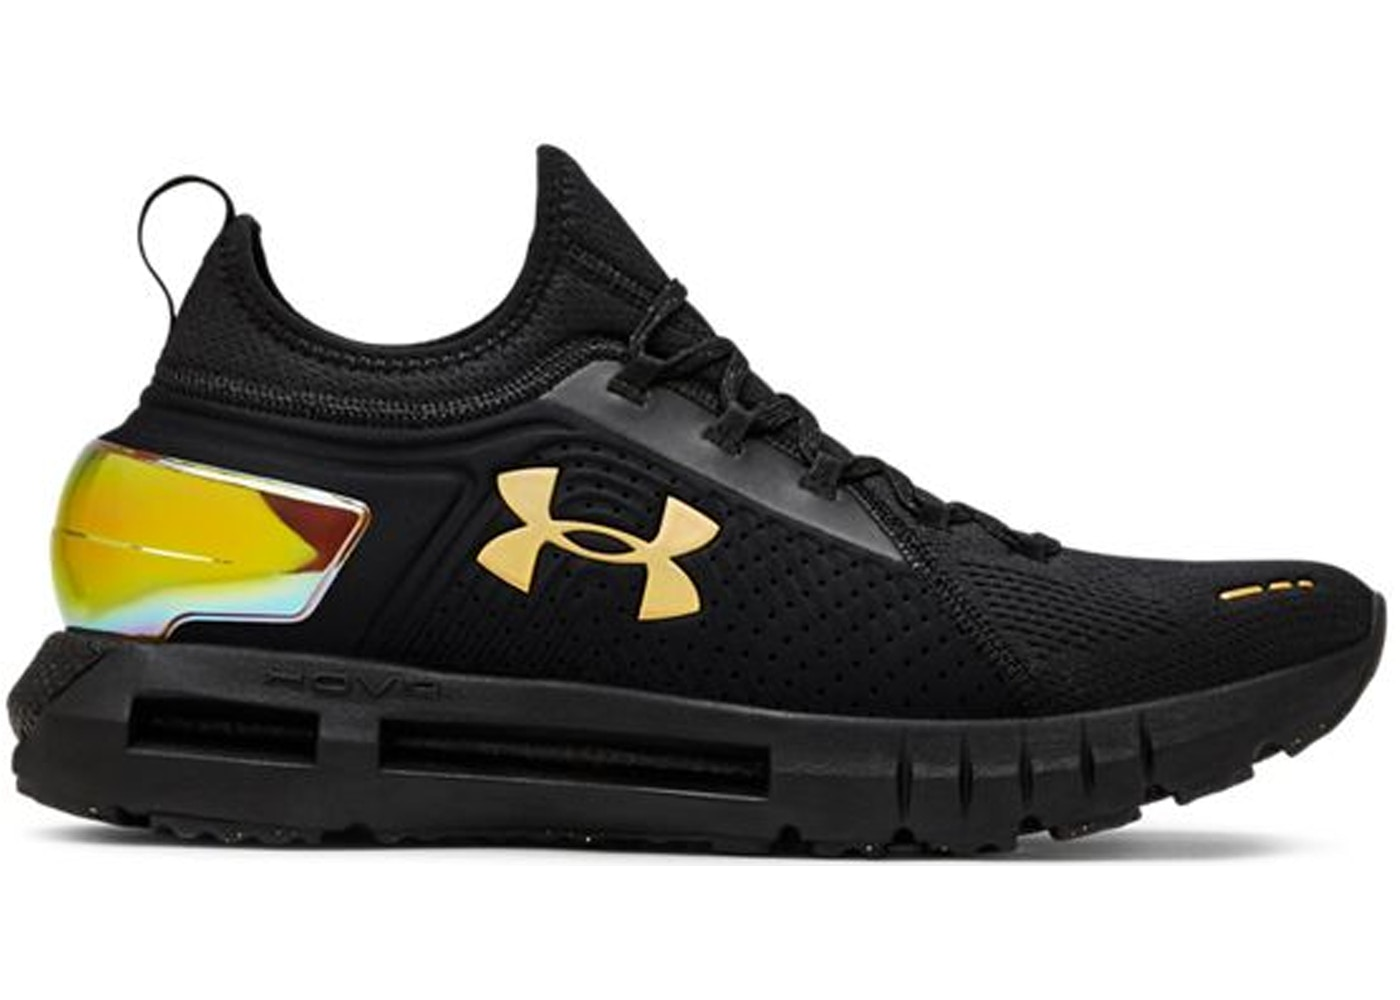 hot sale online bbfa7 014a9 Under Armour Hovr Phantom SE MD Black Gold